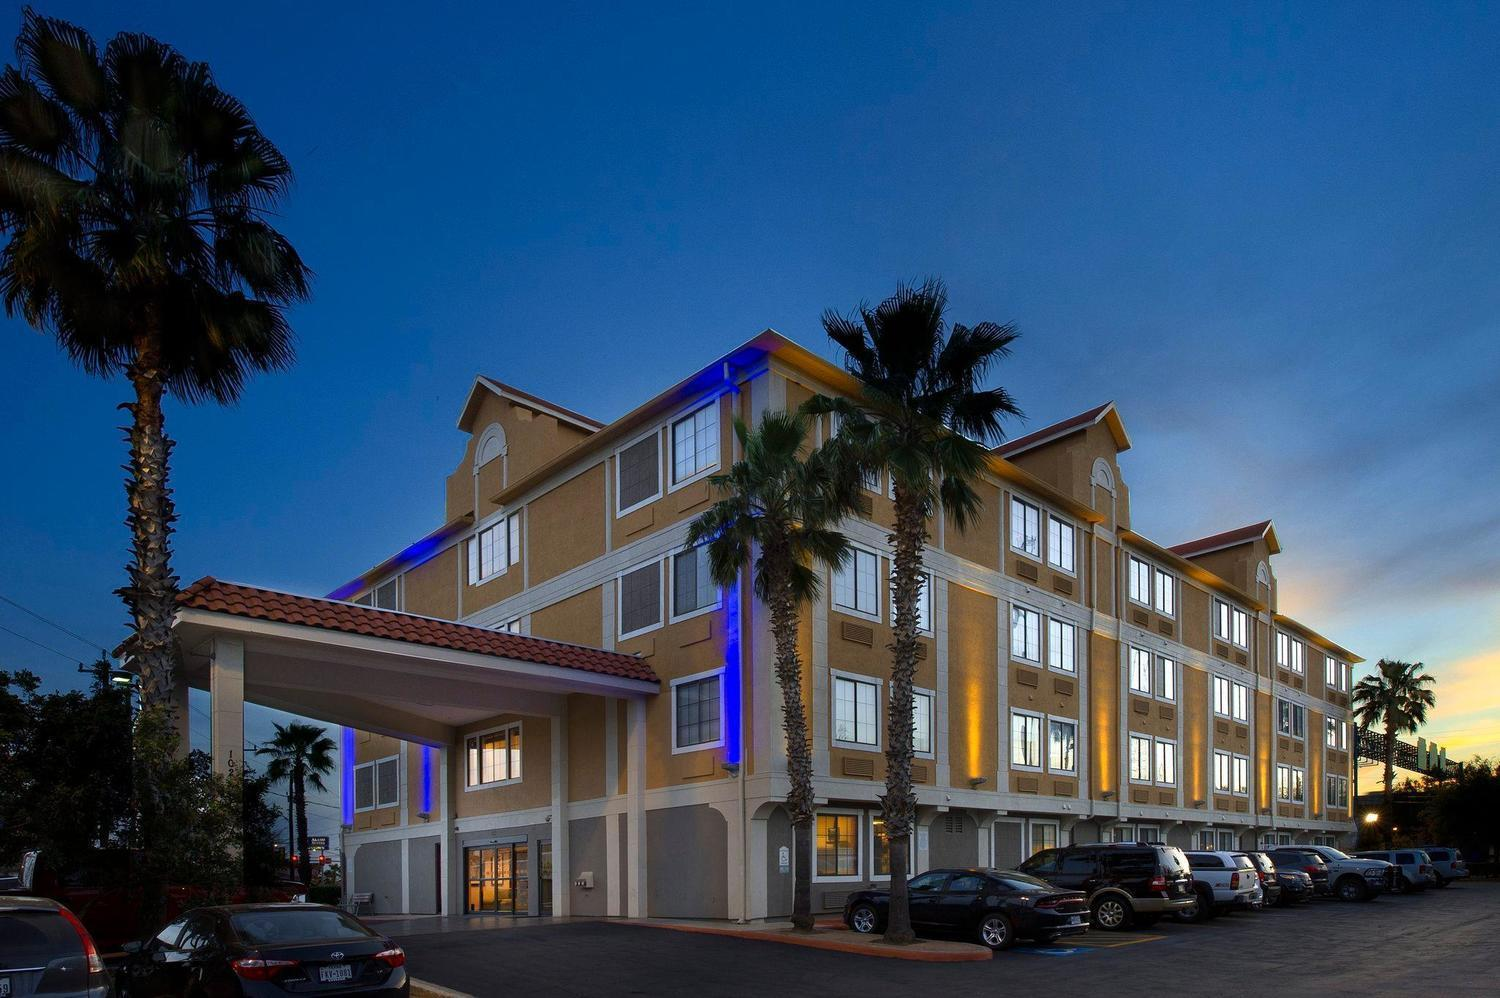 Baywood Hotels Corporate Office